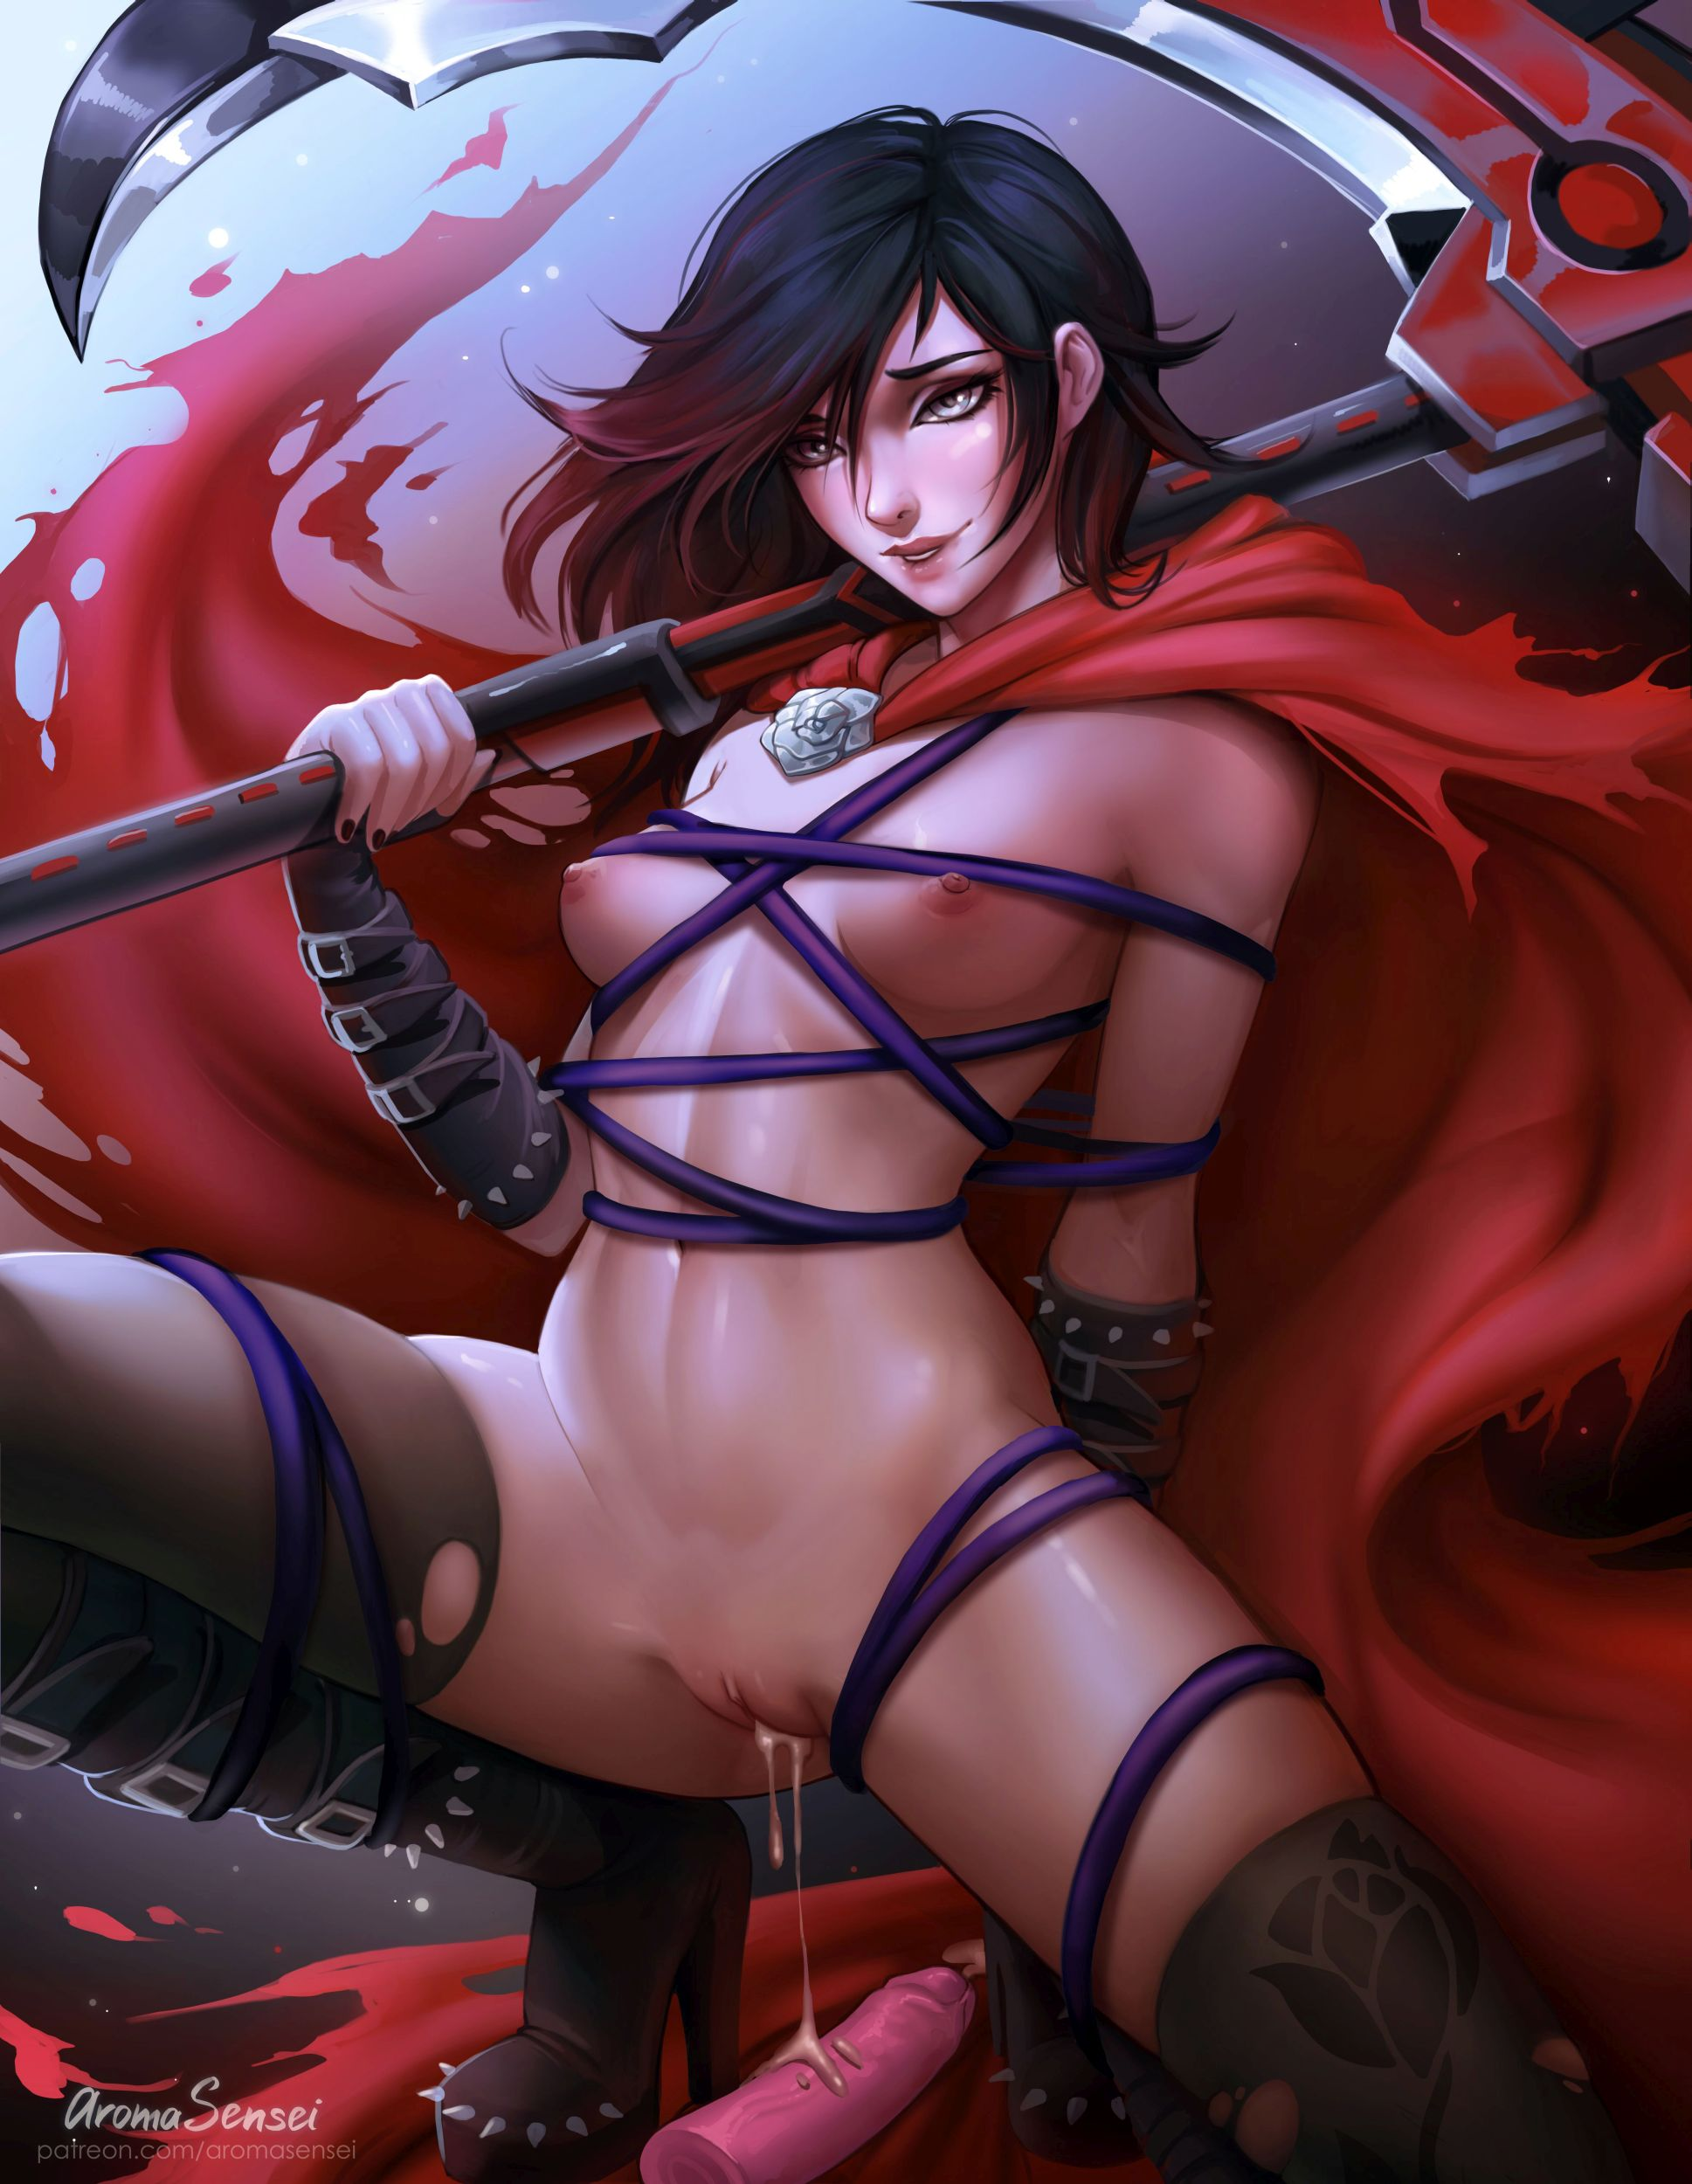 Thirty More Hentai Pics Of Ruby Rose From RWBY